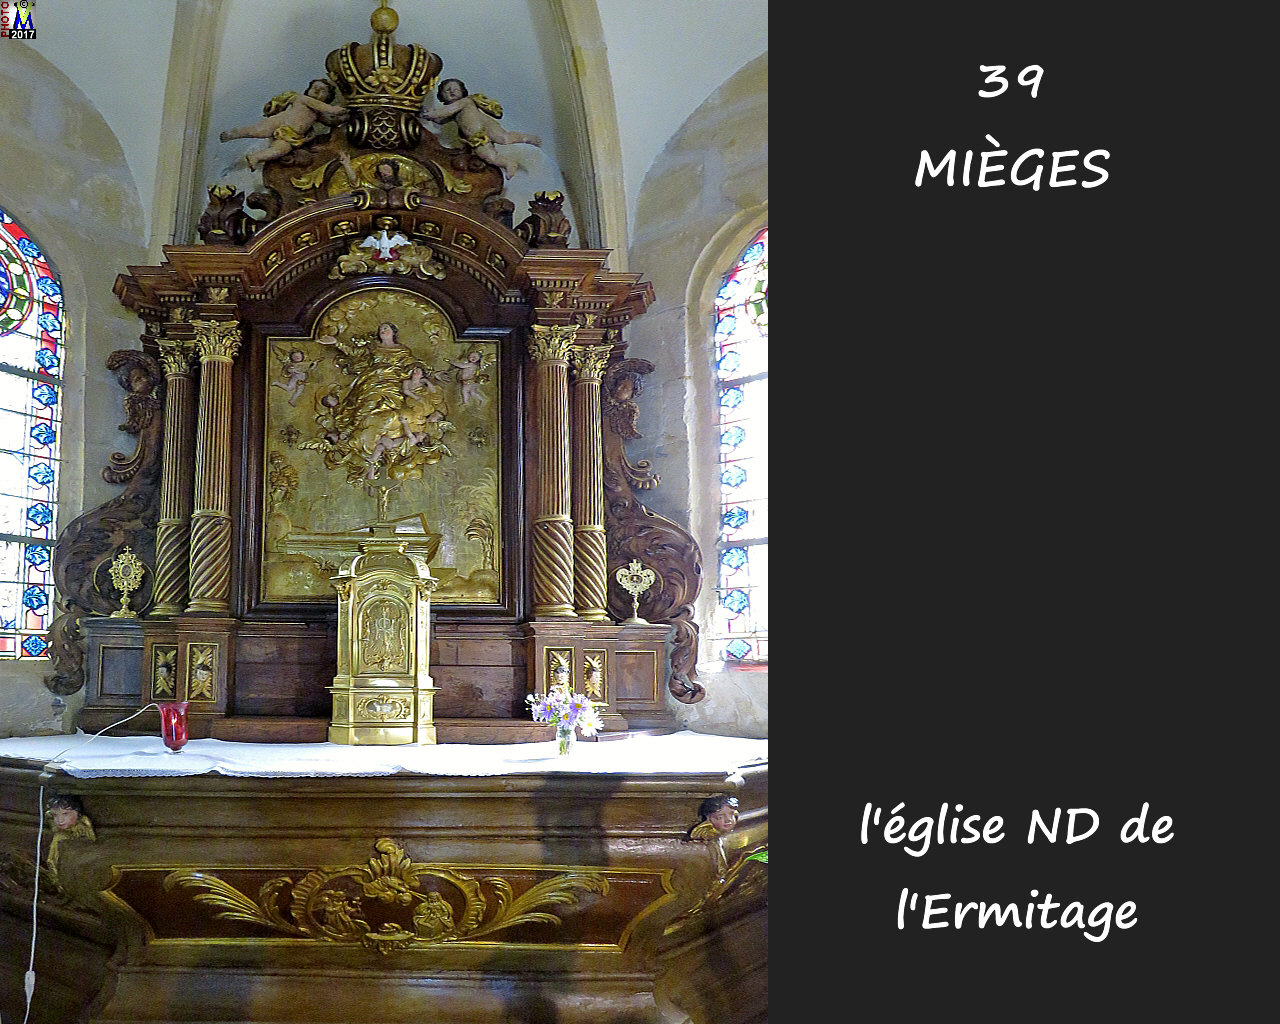 39MIEGES_Ermitage_124.jpg